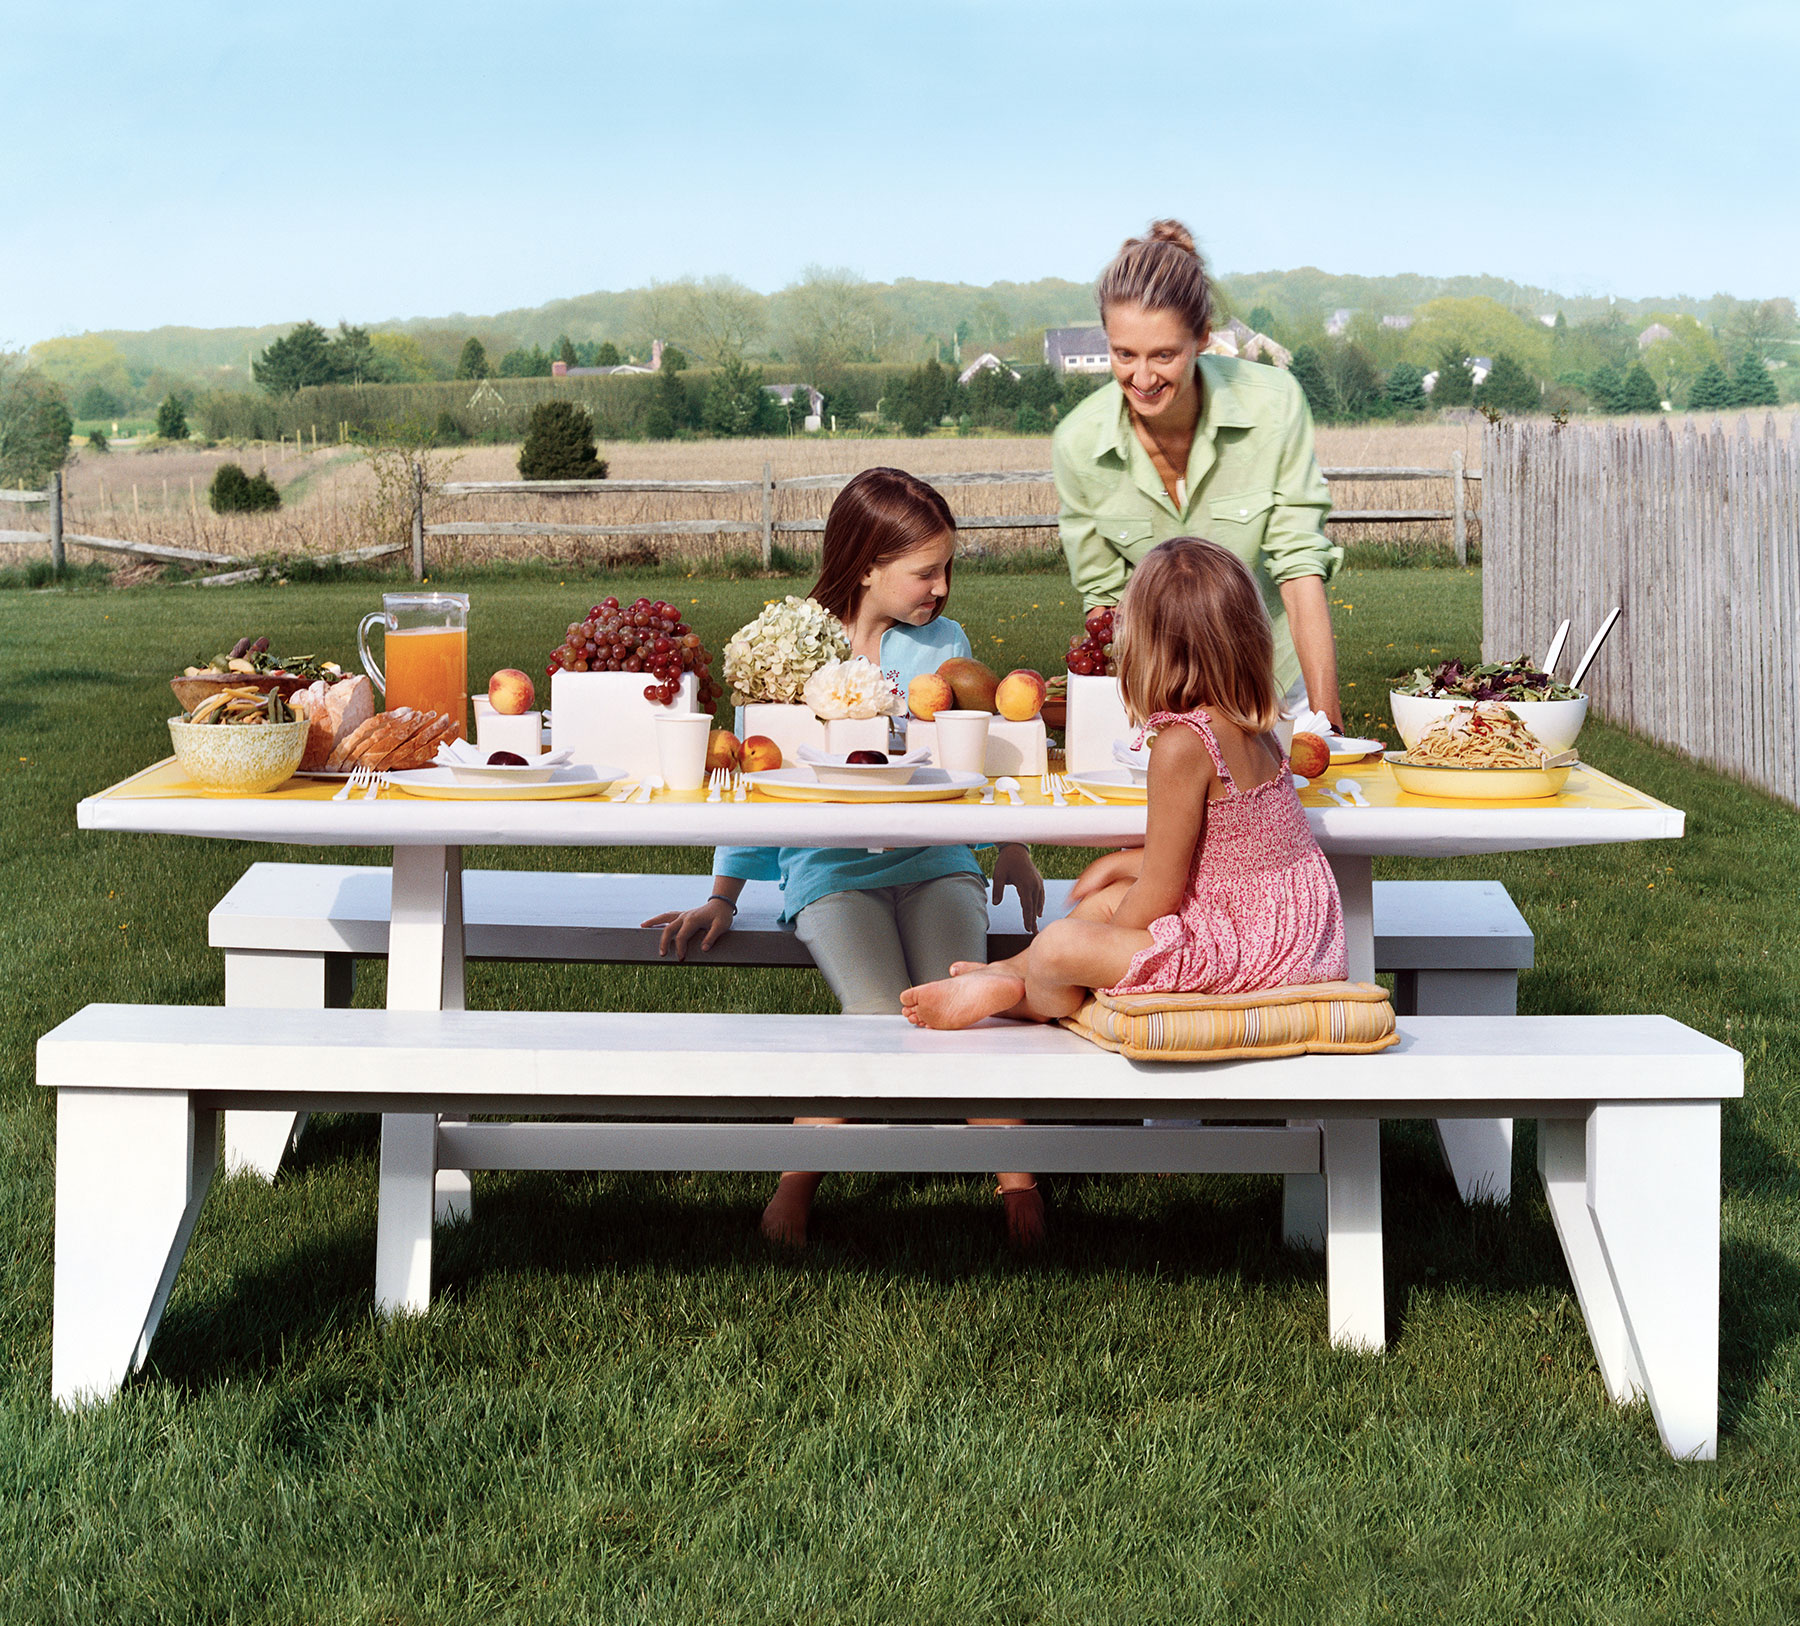 Family eating dinner on a picnic table in the countryside